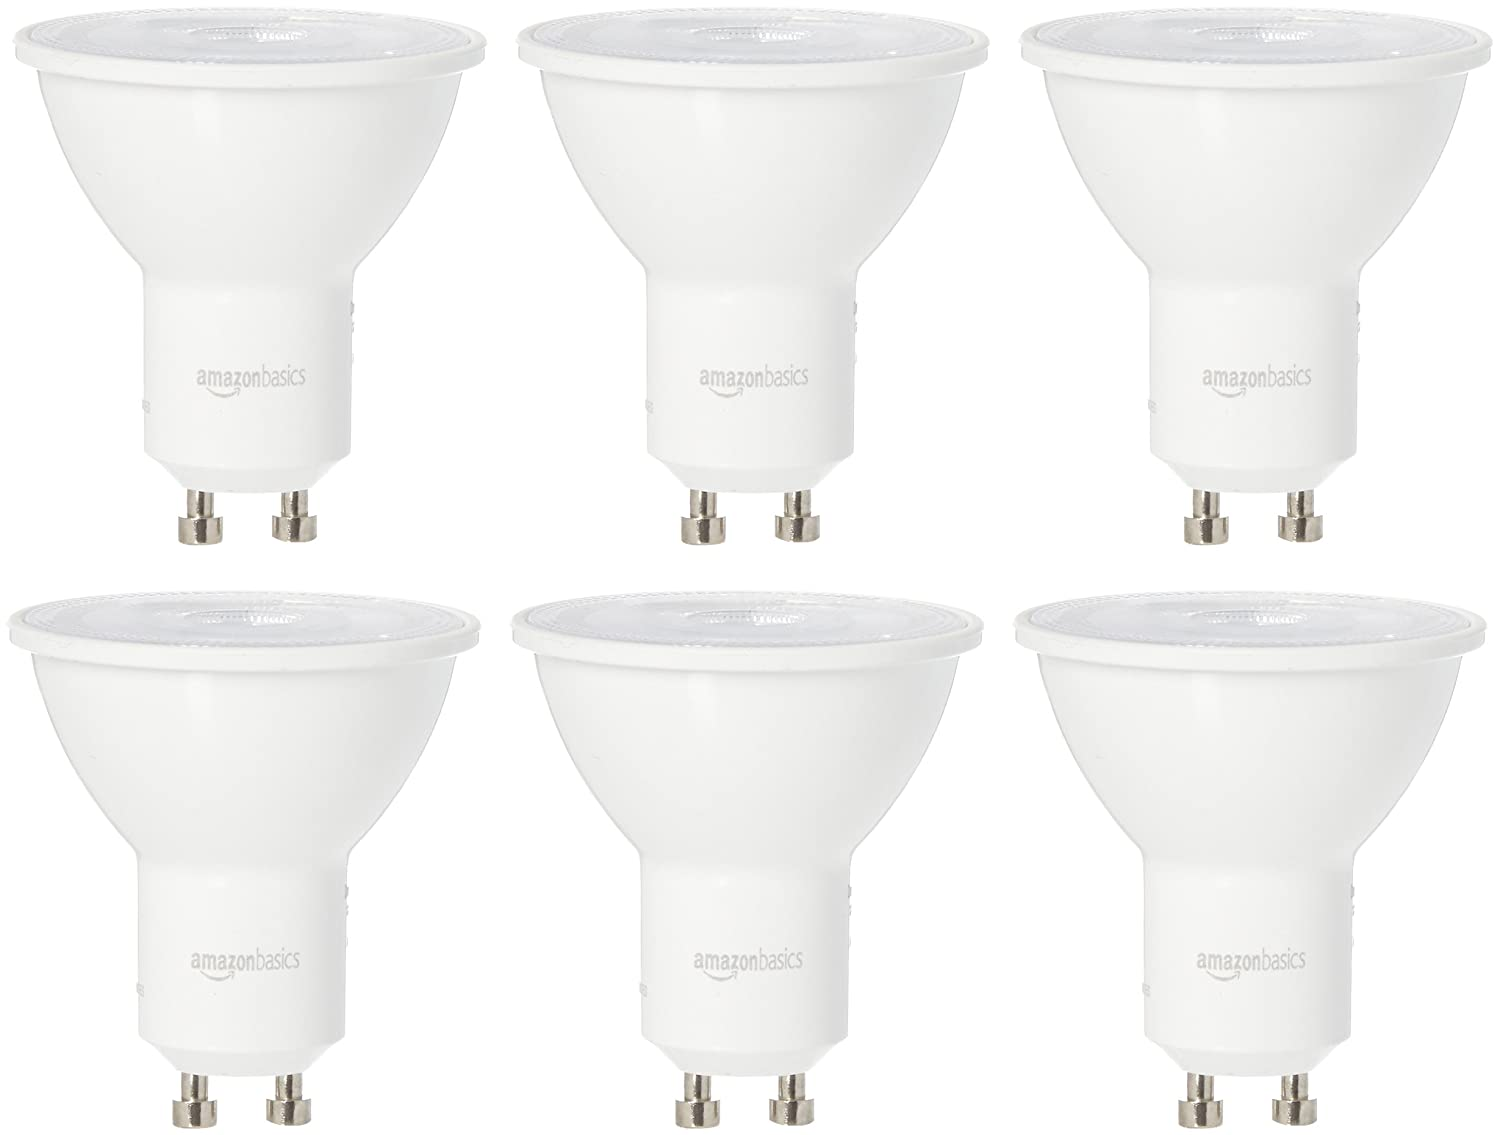 AmazonBasics 50 Watt Equivalent, Bright White, Dimmable, GU10 LED Light Bulb | 6-Pack